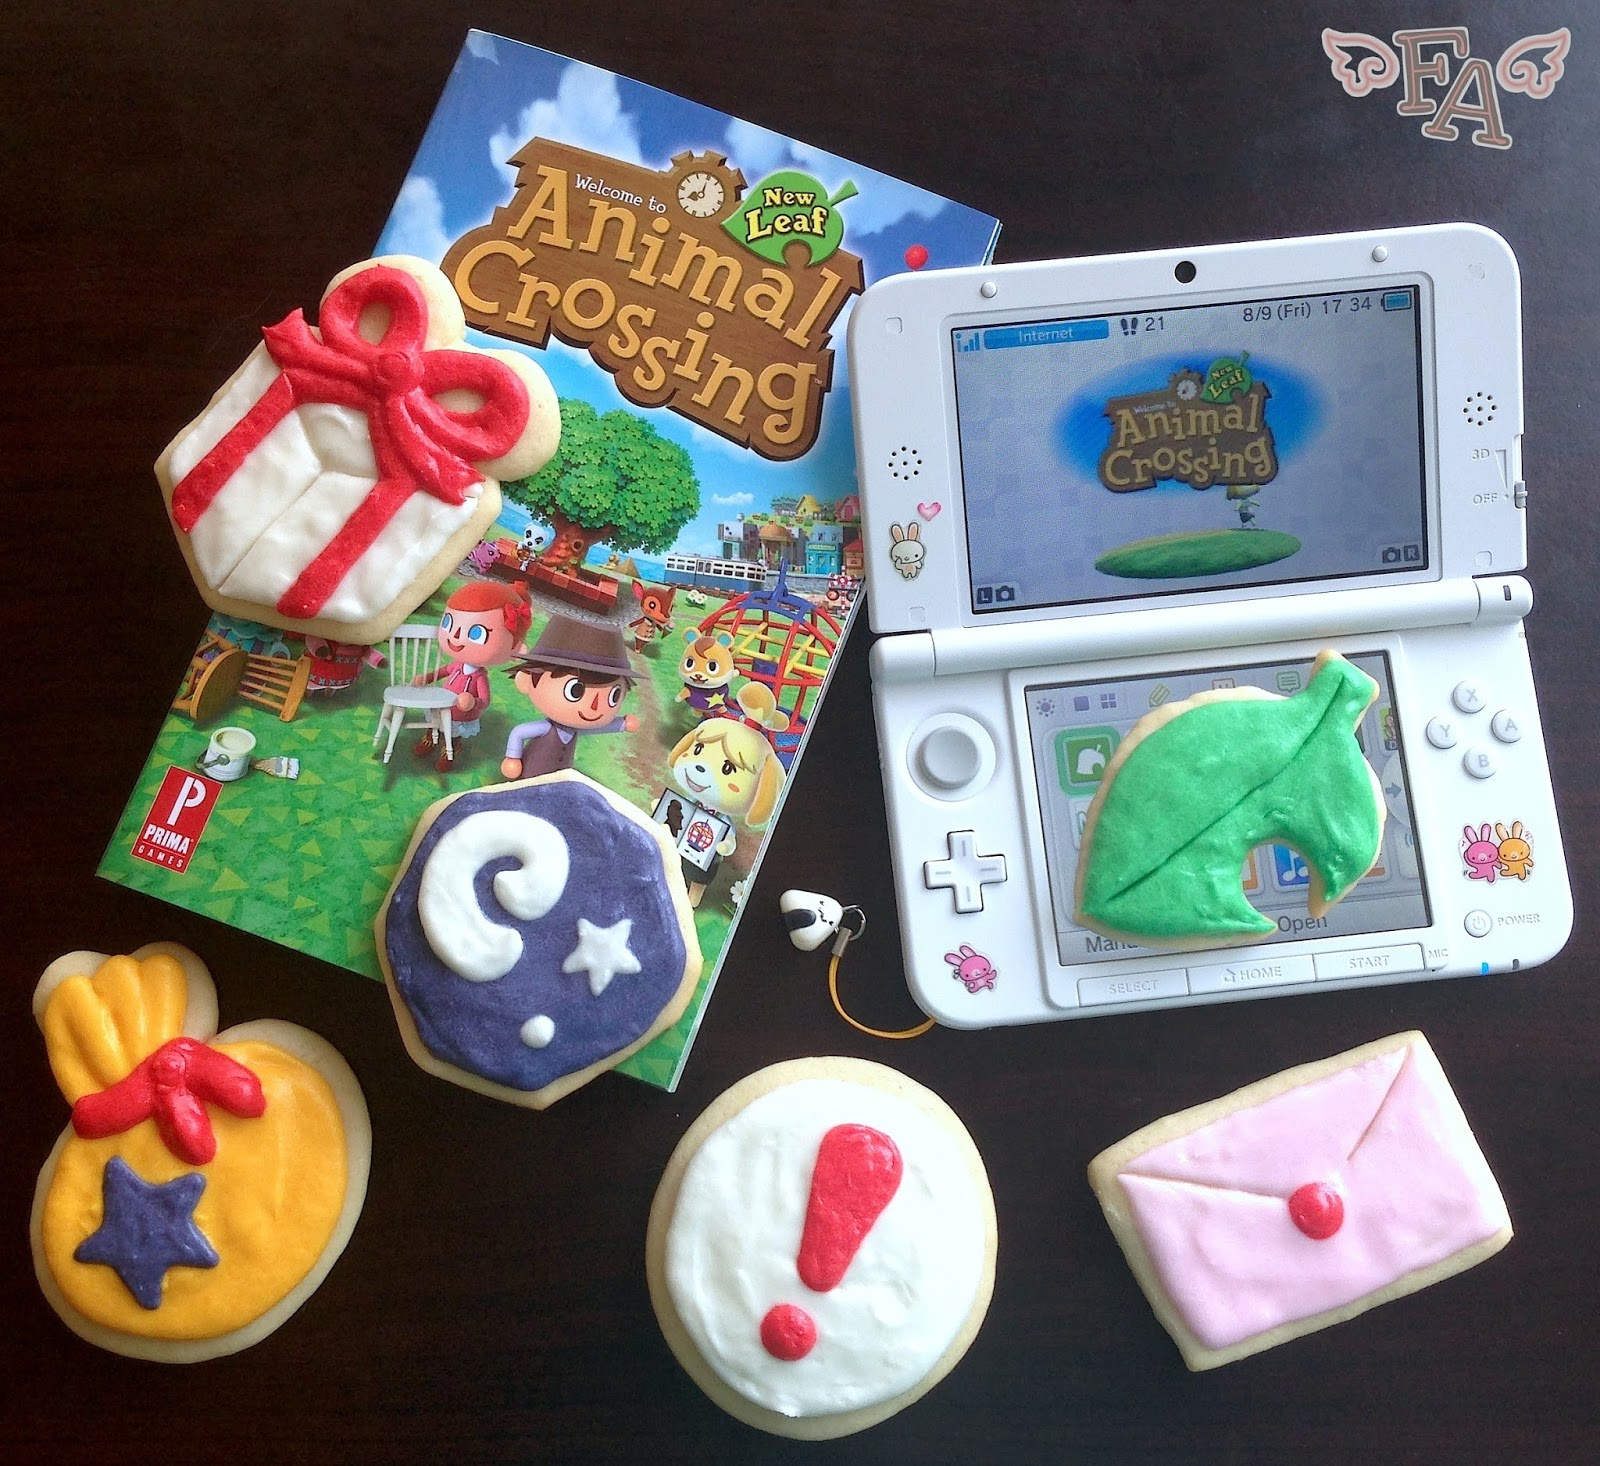 FictionFood Caf Animal Crossing New Leaf Frosted Sugar Cookies